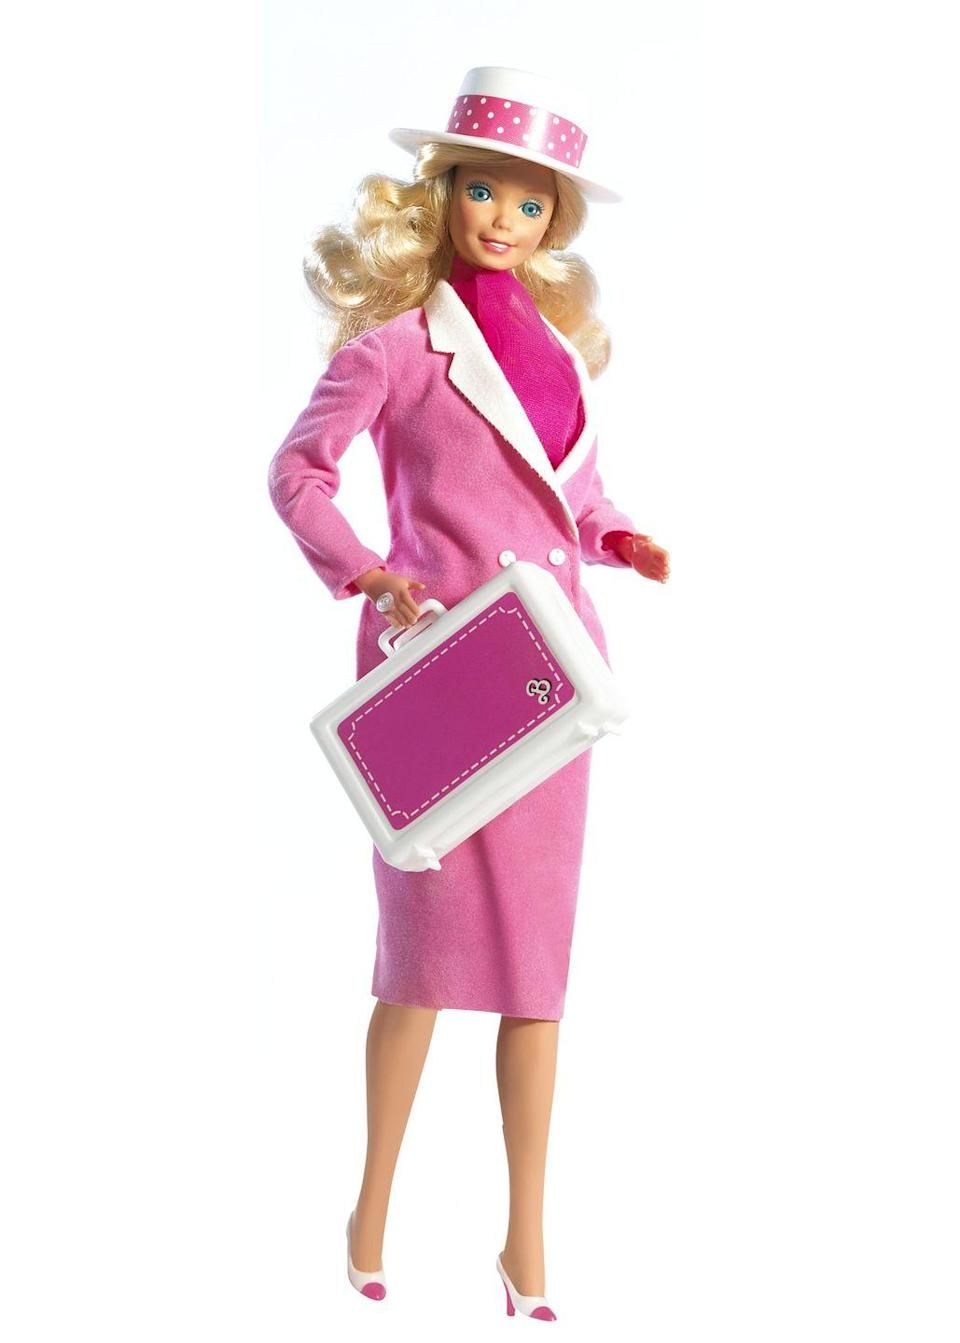 <p>1985's Day to Night Barbie has a practical outfit plan to get her from the office to an evening date in no time flat: It's all about layers. And jaunty hats.</p>